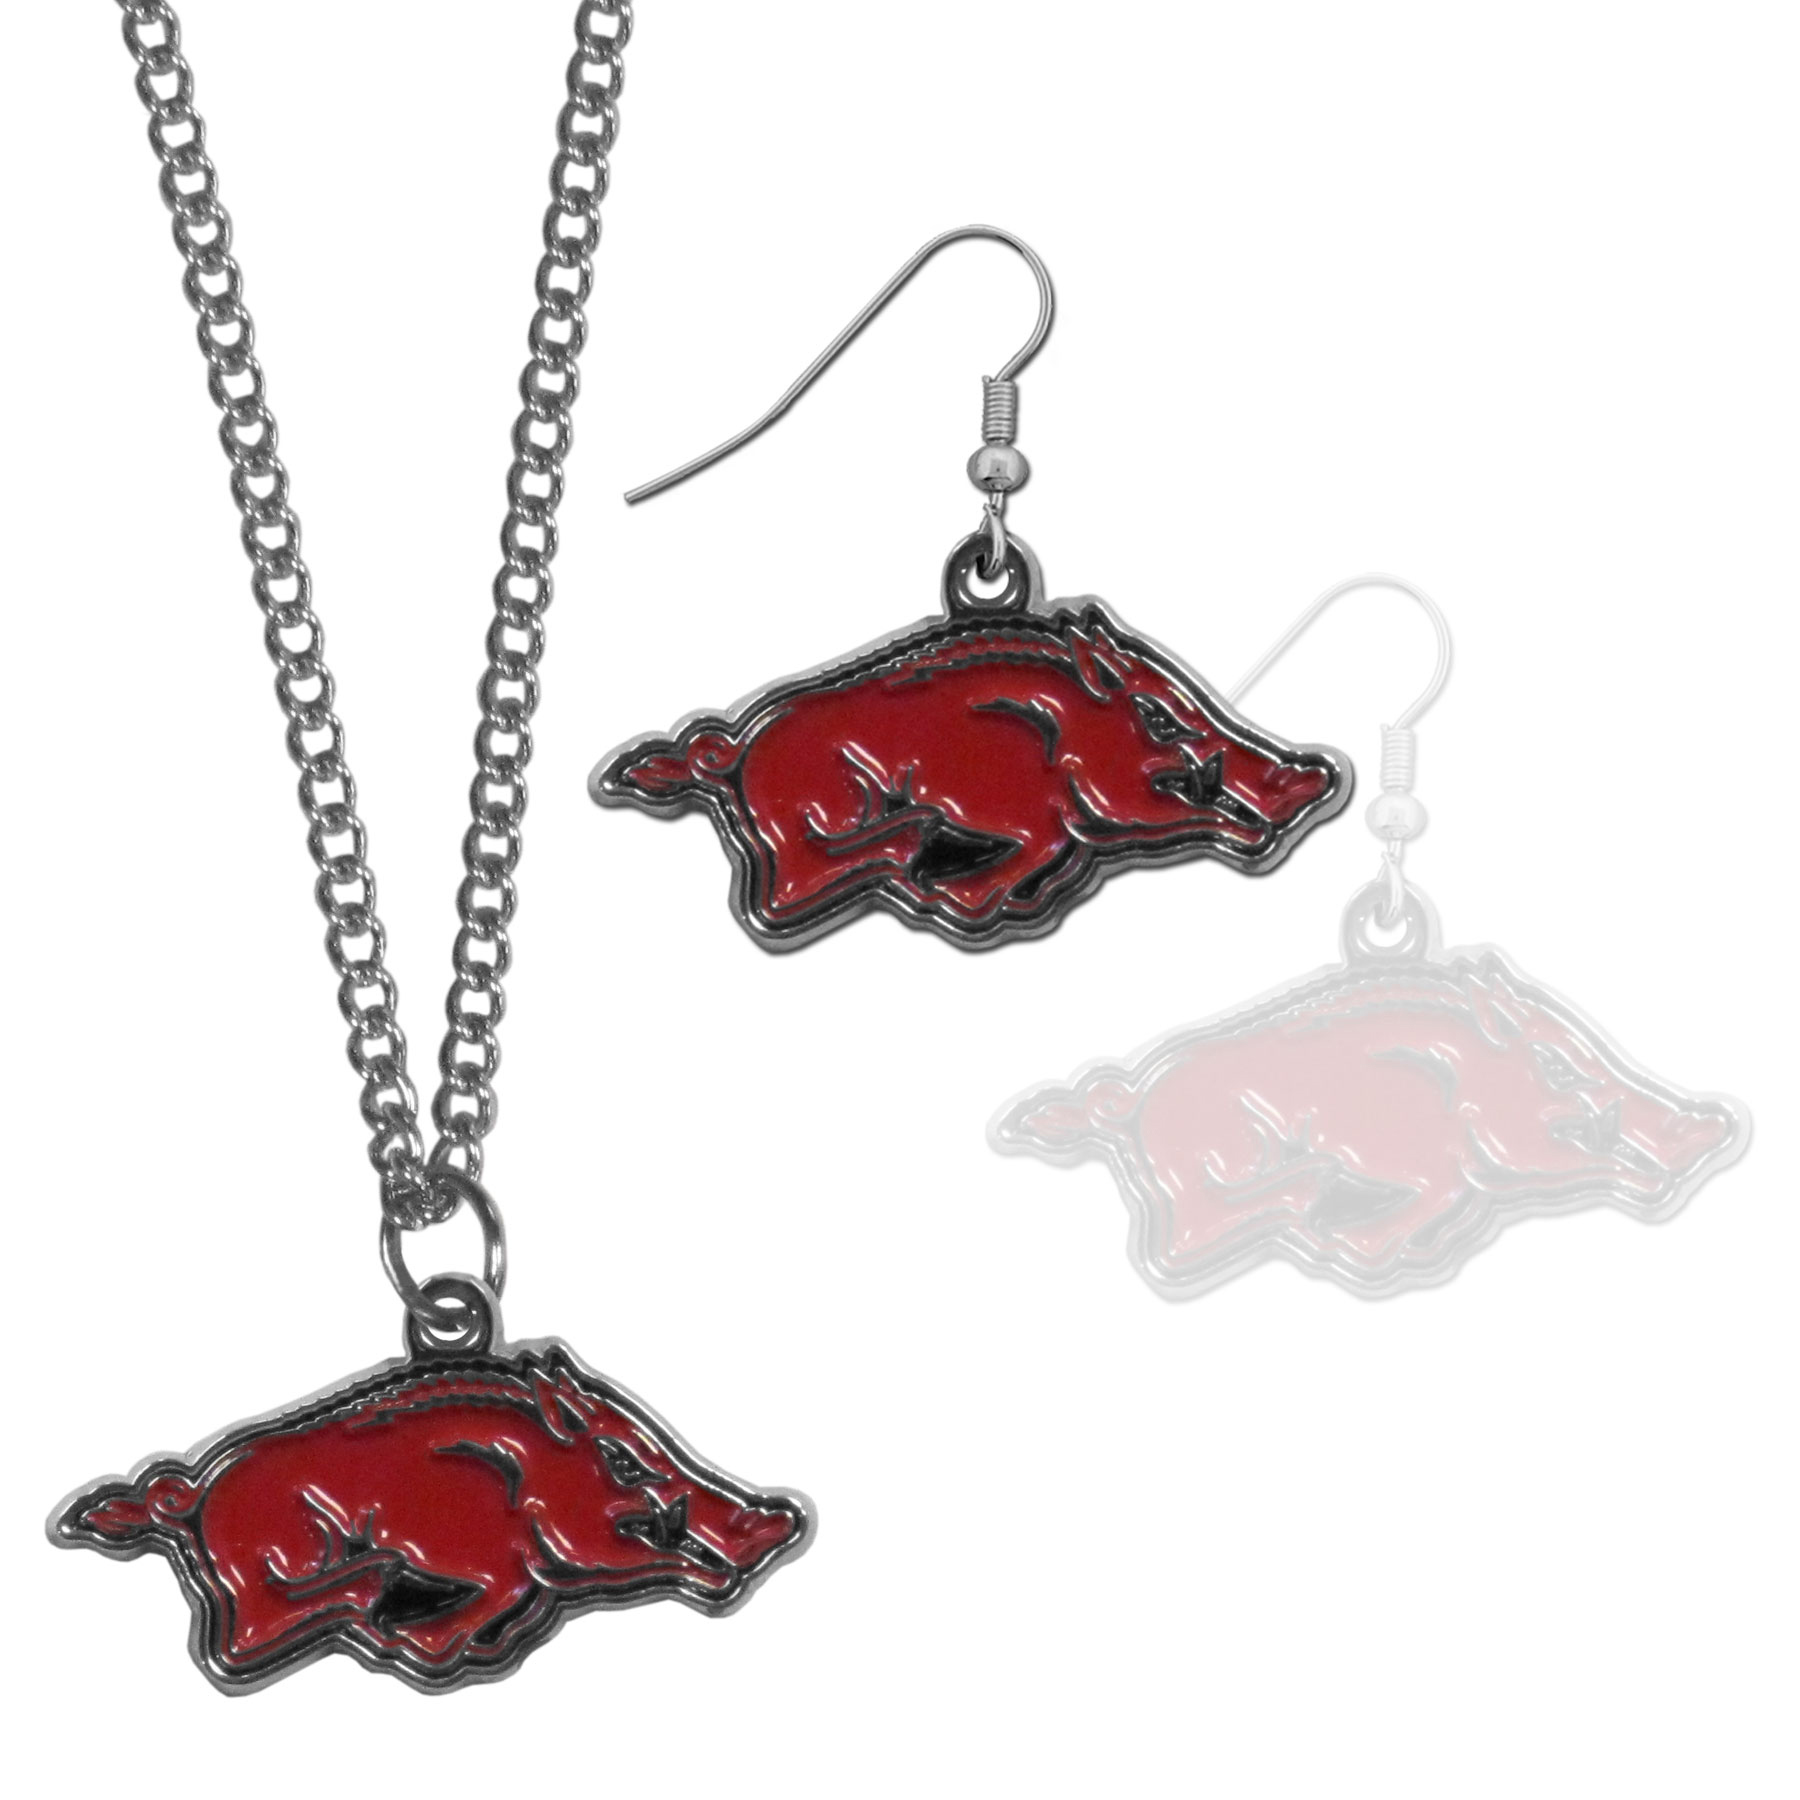 Arkansas Razorbacks Dangle Earrings and Chain Necklace Set - This classic jewelry set contains are most popular Arkansas Razorbacks dangle earrings and 22 inch chain necklace. The trendy, dangle earrings are lightweight and feature a fully cast metal team charm with enameled team colors. The matching necklace completes this fashion forward combo and is a spirited set that is perfect for game day but nice enough for everyday.